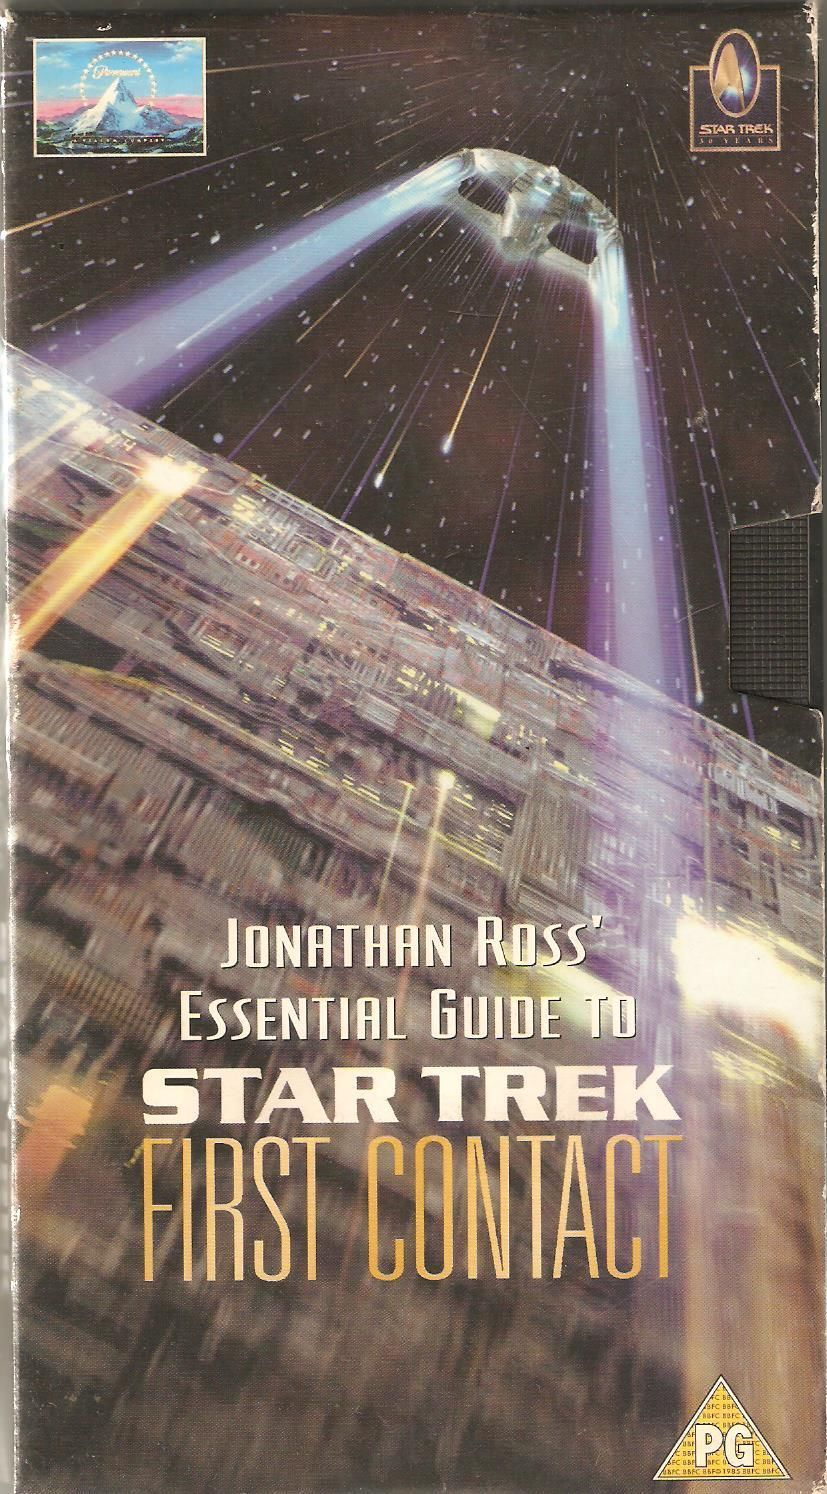 Jonathan Ross' Essential Guide To Star Trek: First Contact